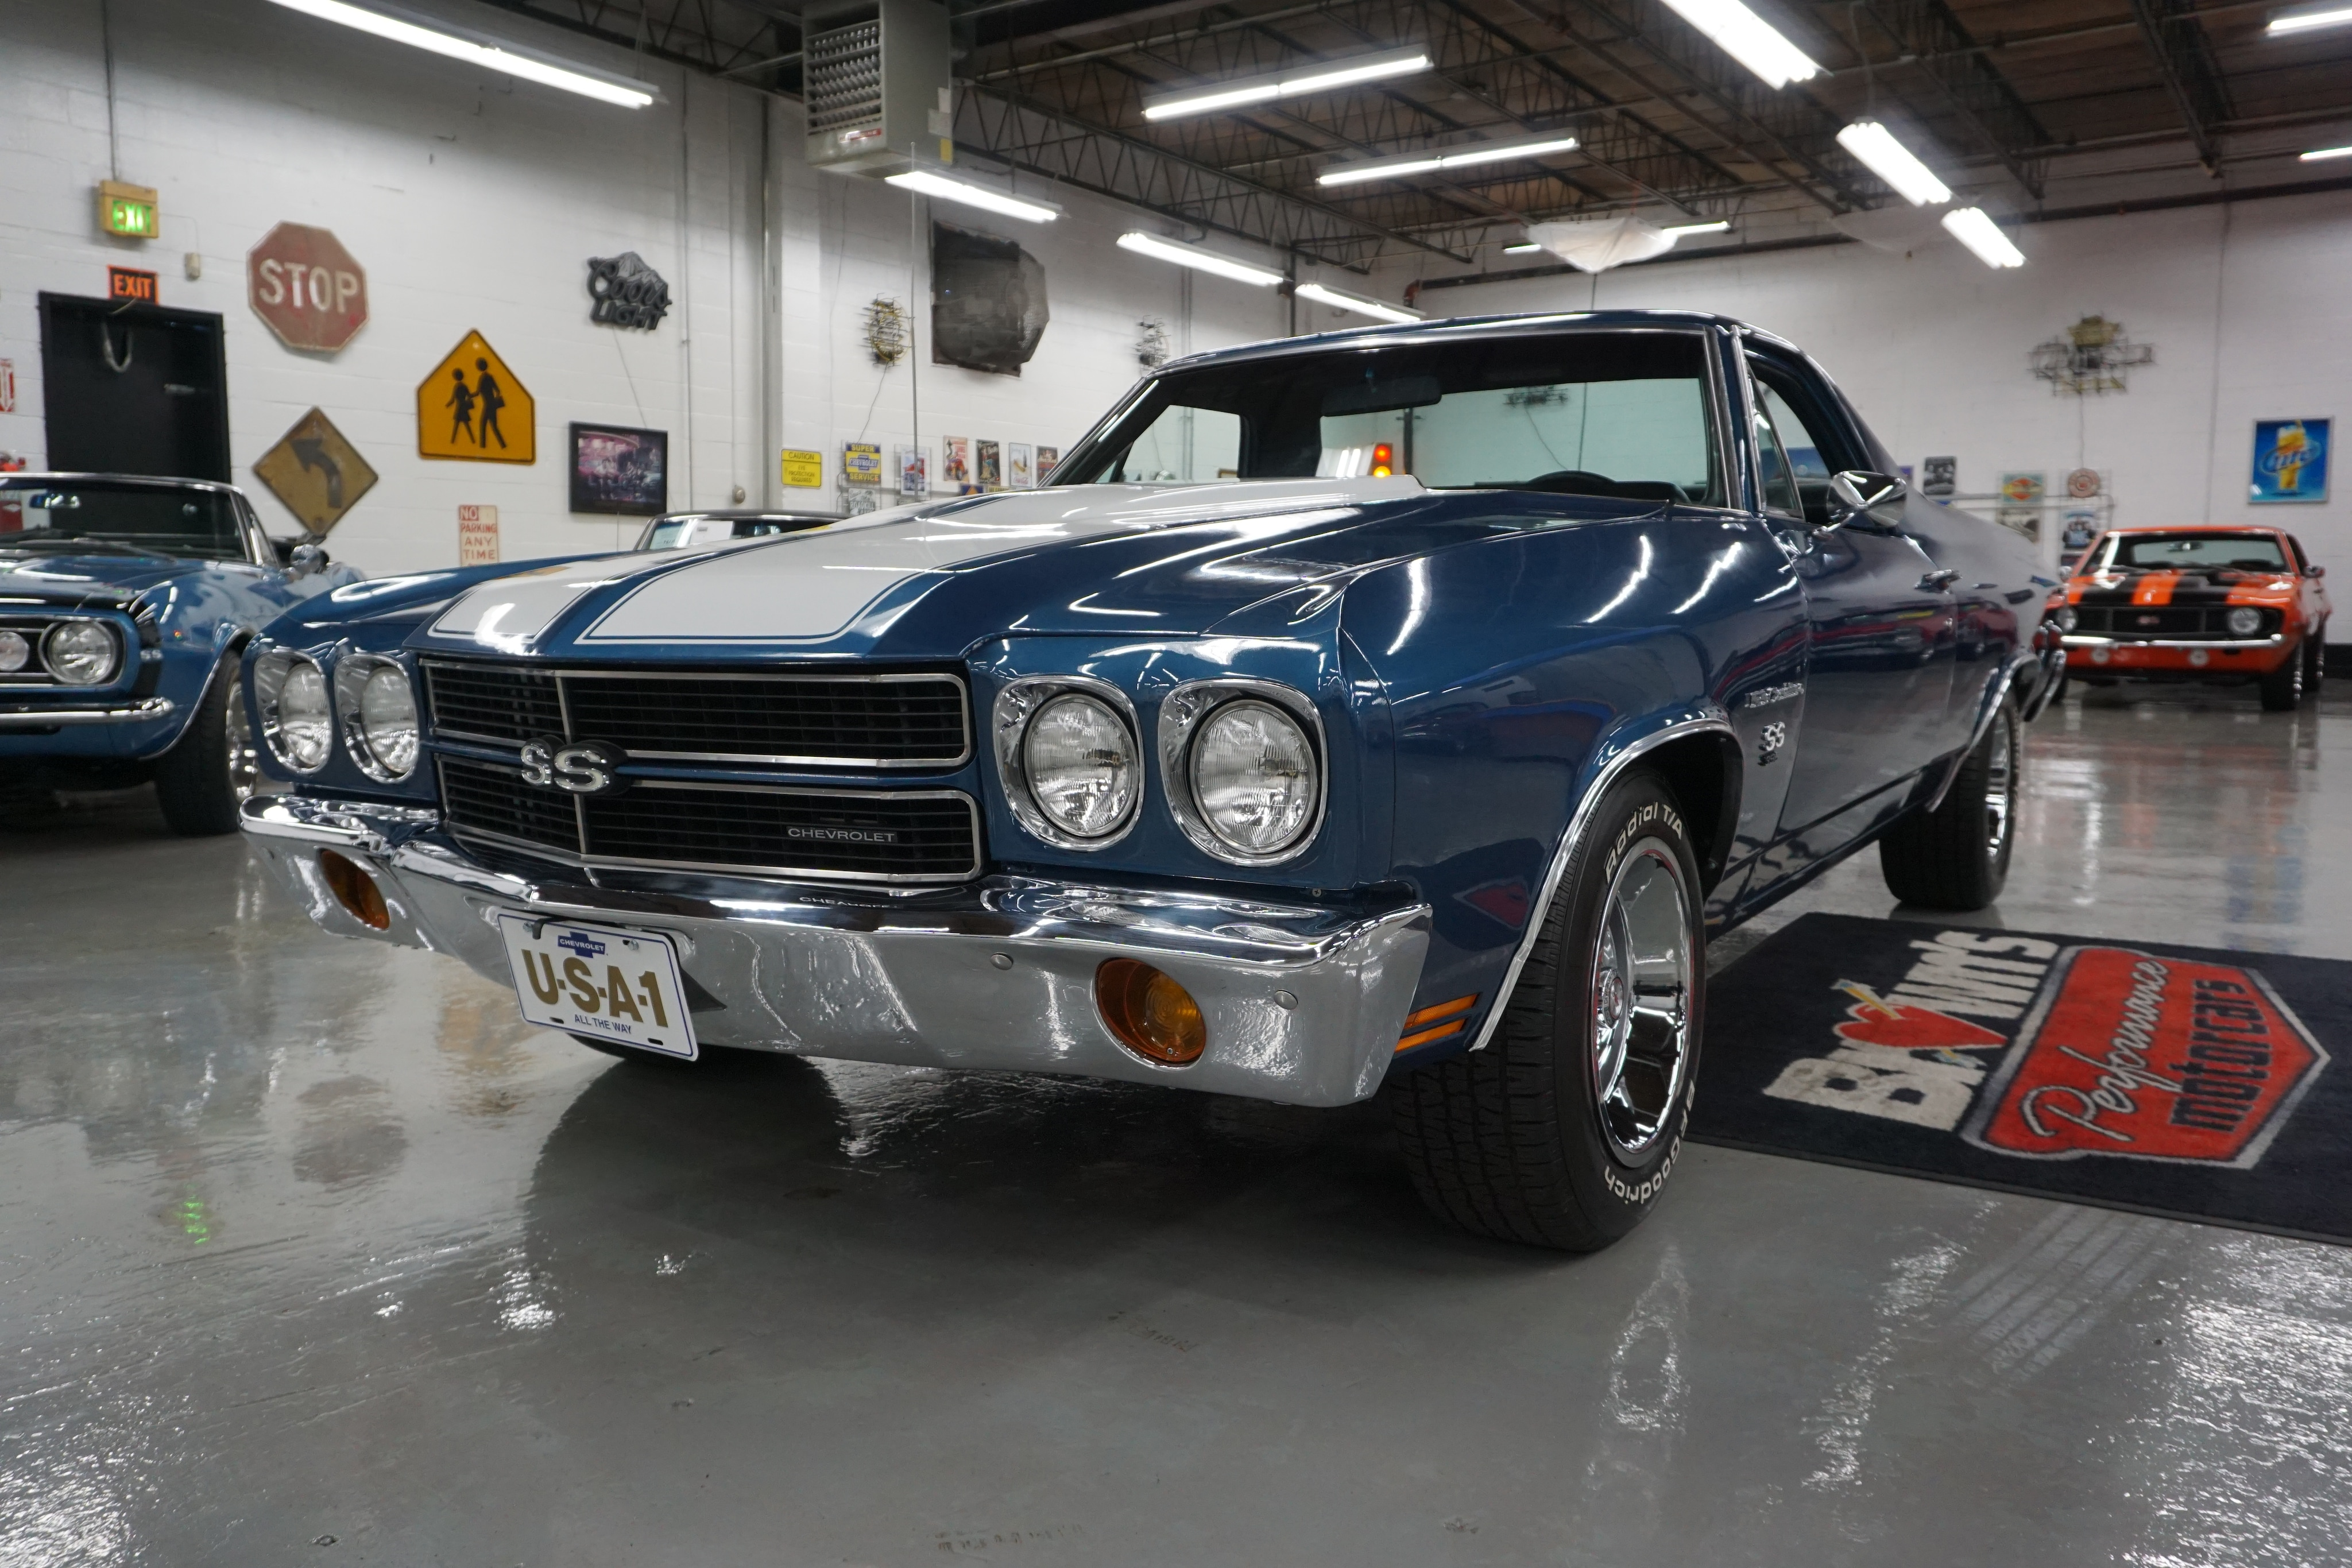 1970 Chevrolet El Camino REAL SS Coupe